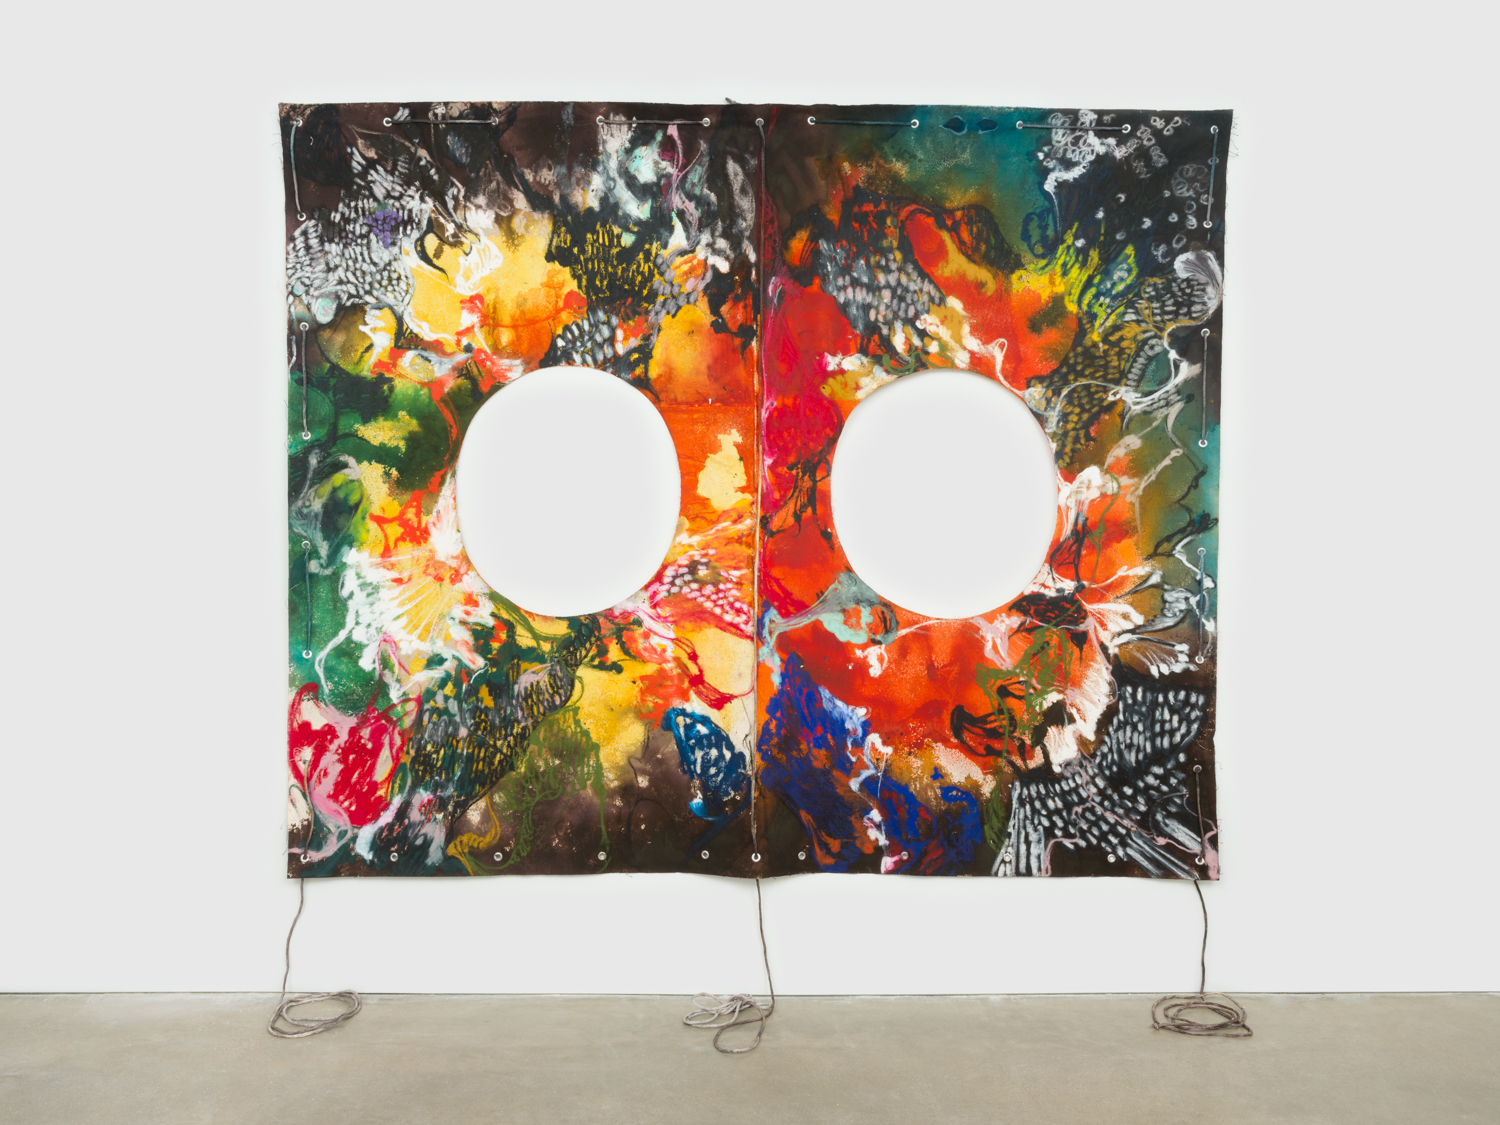 NaotakaHiro  Untitled (Sol)  2018 Canvas, fabric dye, oil pastel, rope and grommets 84h x 108w in NaoH040